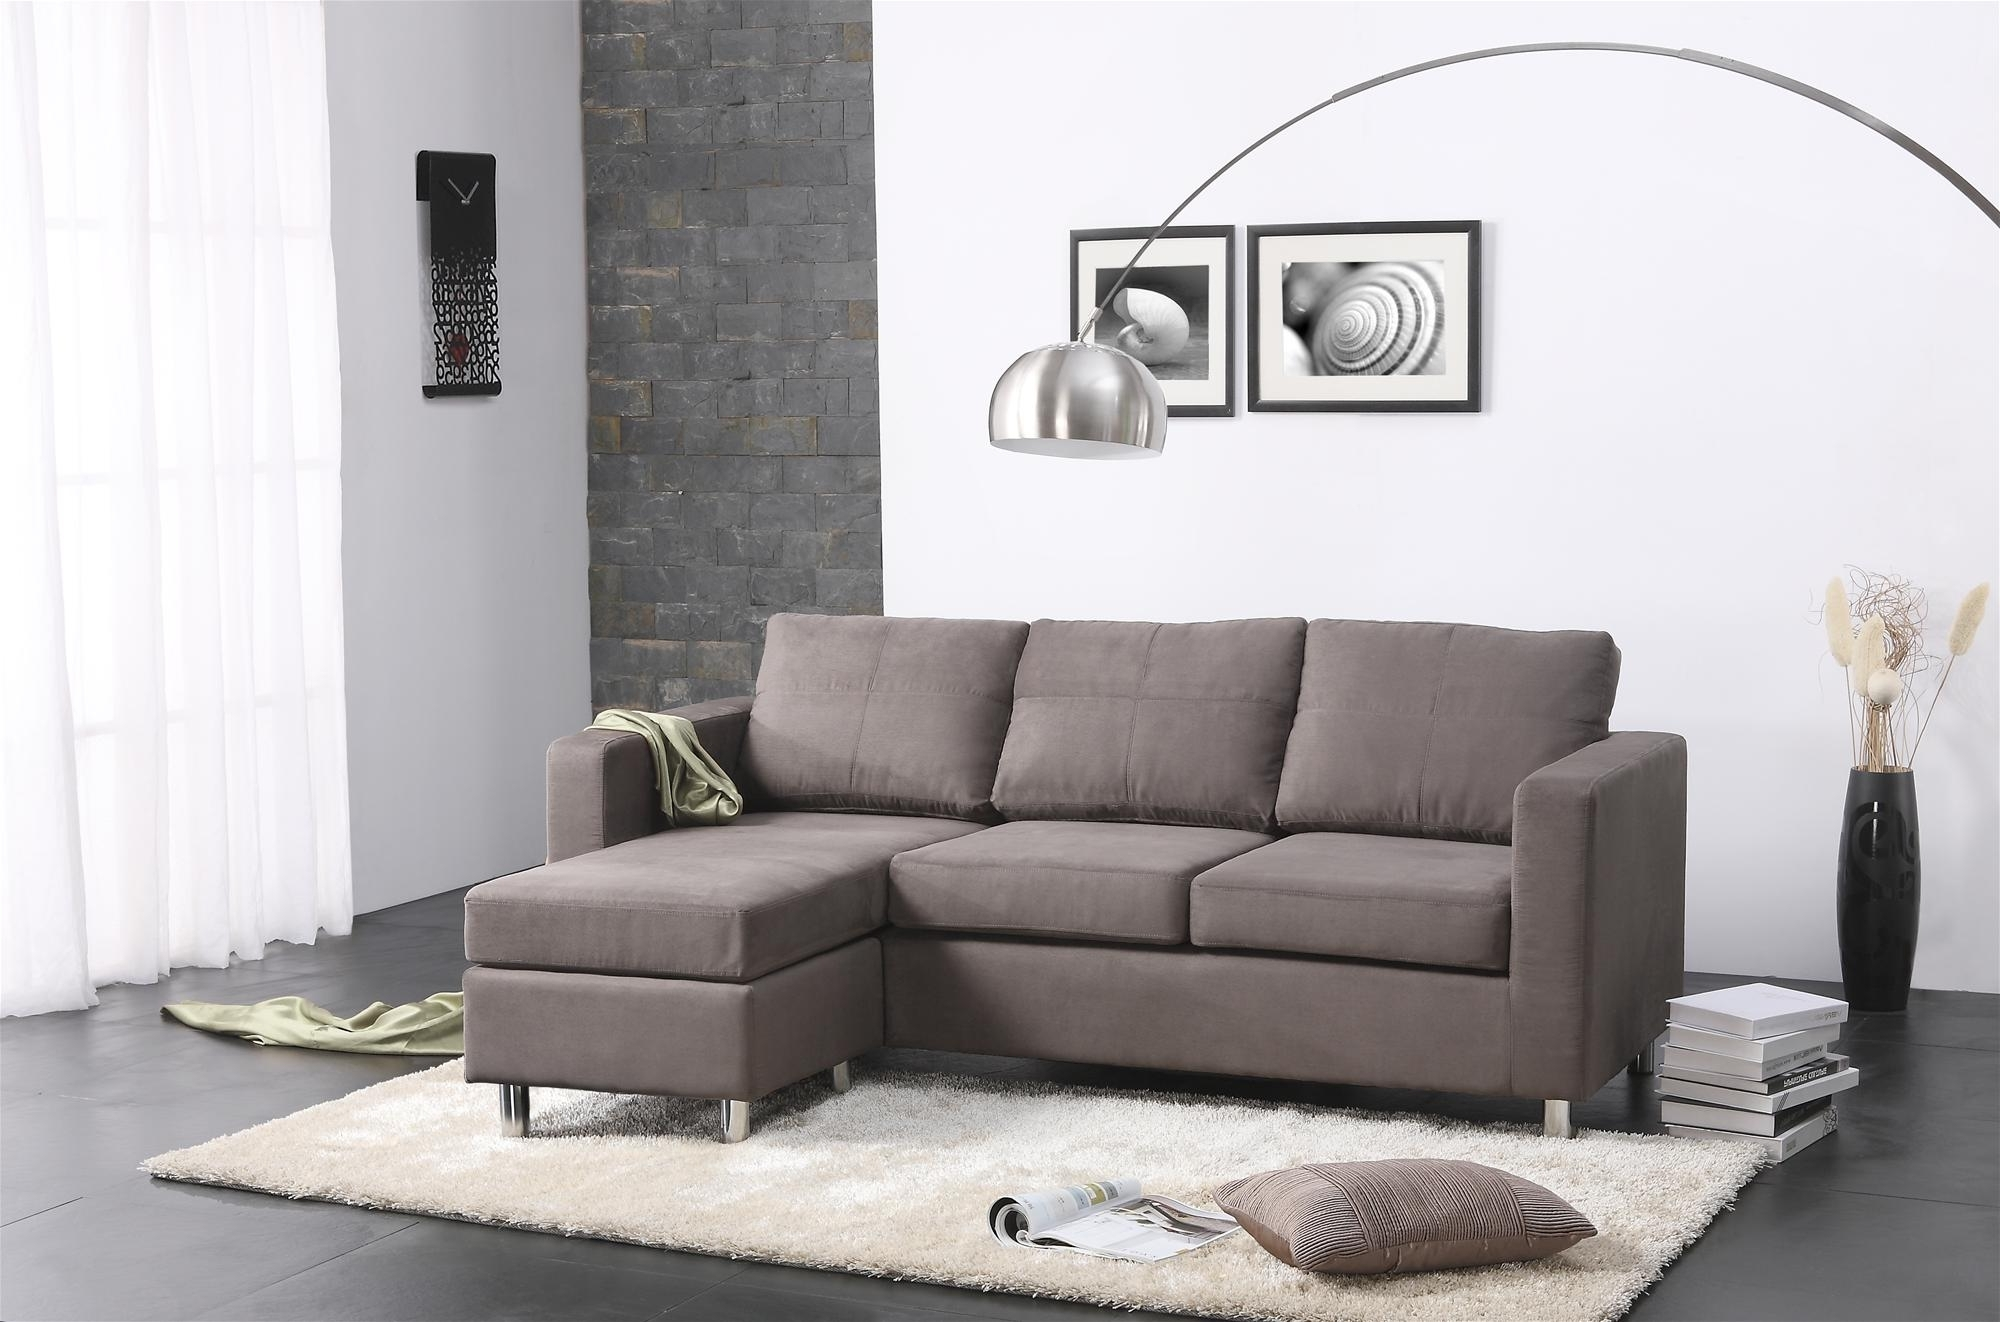 Most Recently Released Sectional Sofas For Small Areas Regarding Fancy Sectional Sofa For Small Spaces 46 For Contemporary Sofa (View 9 of 15)